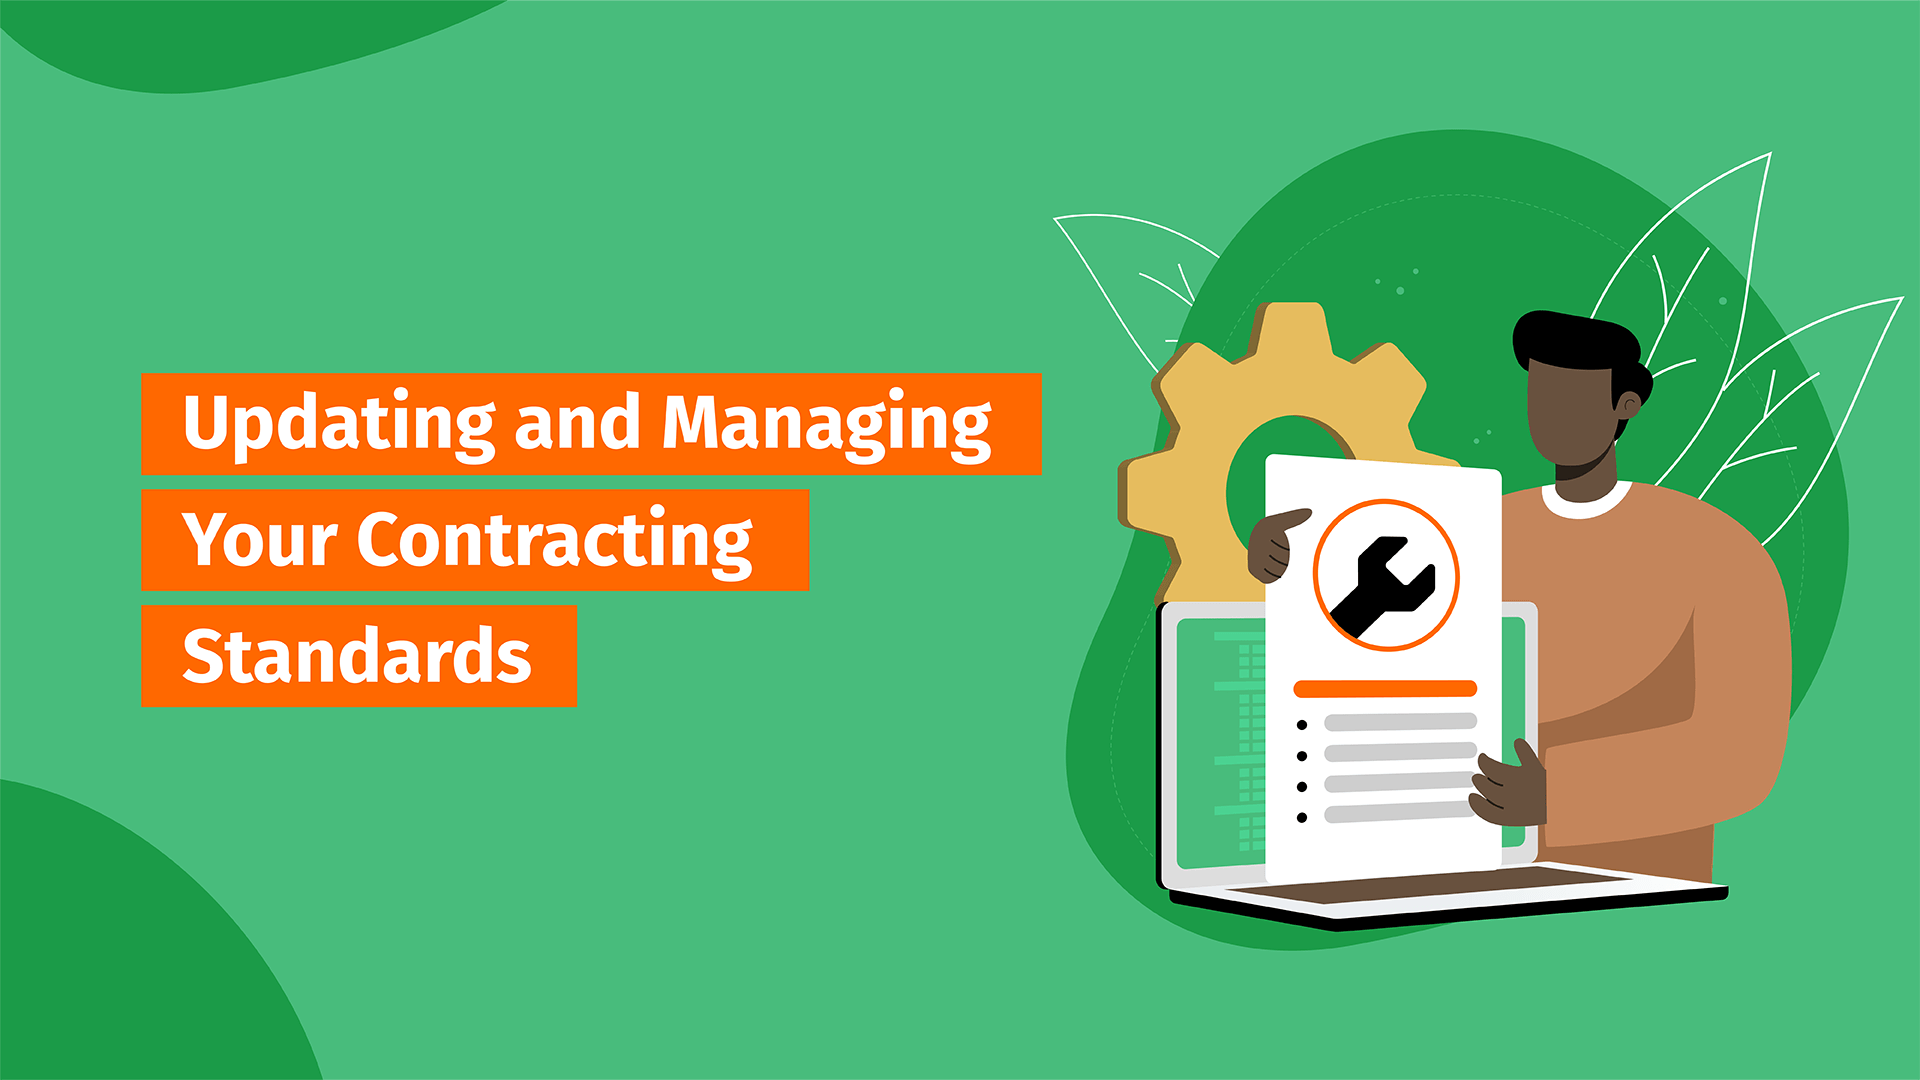 Contracting Standards